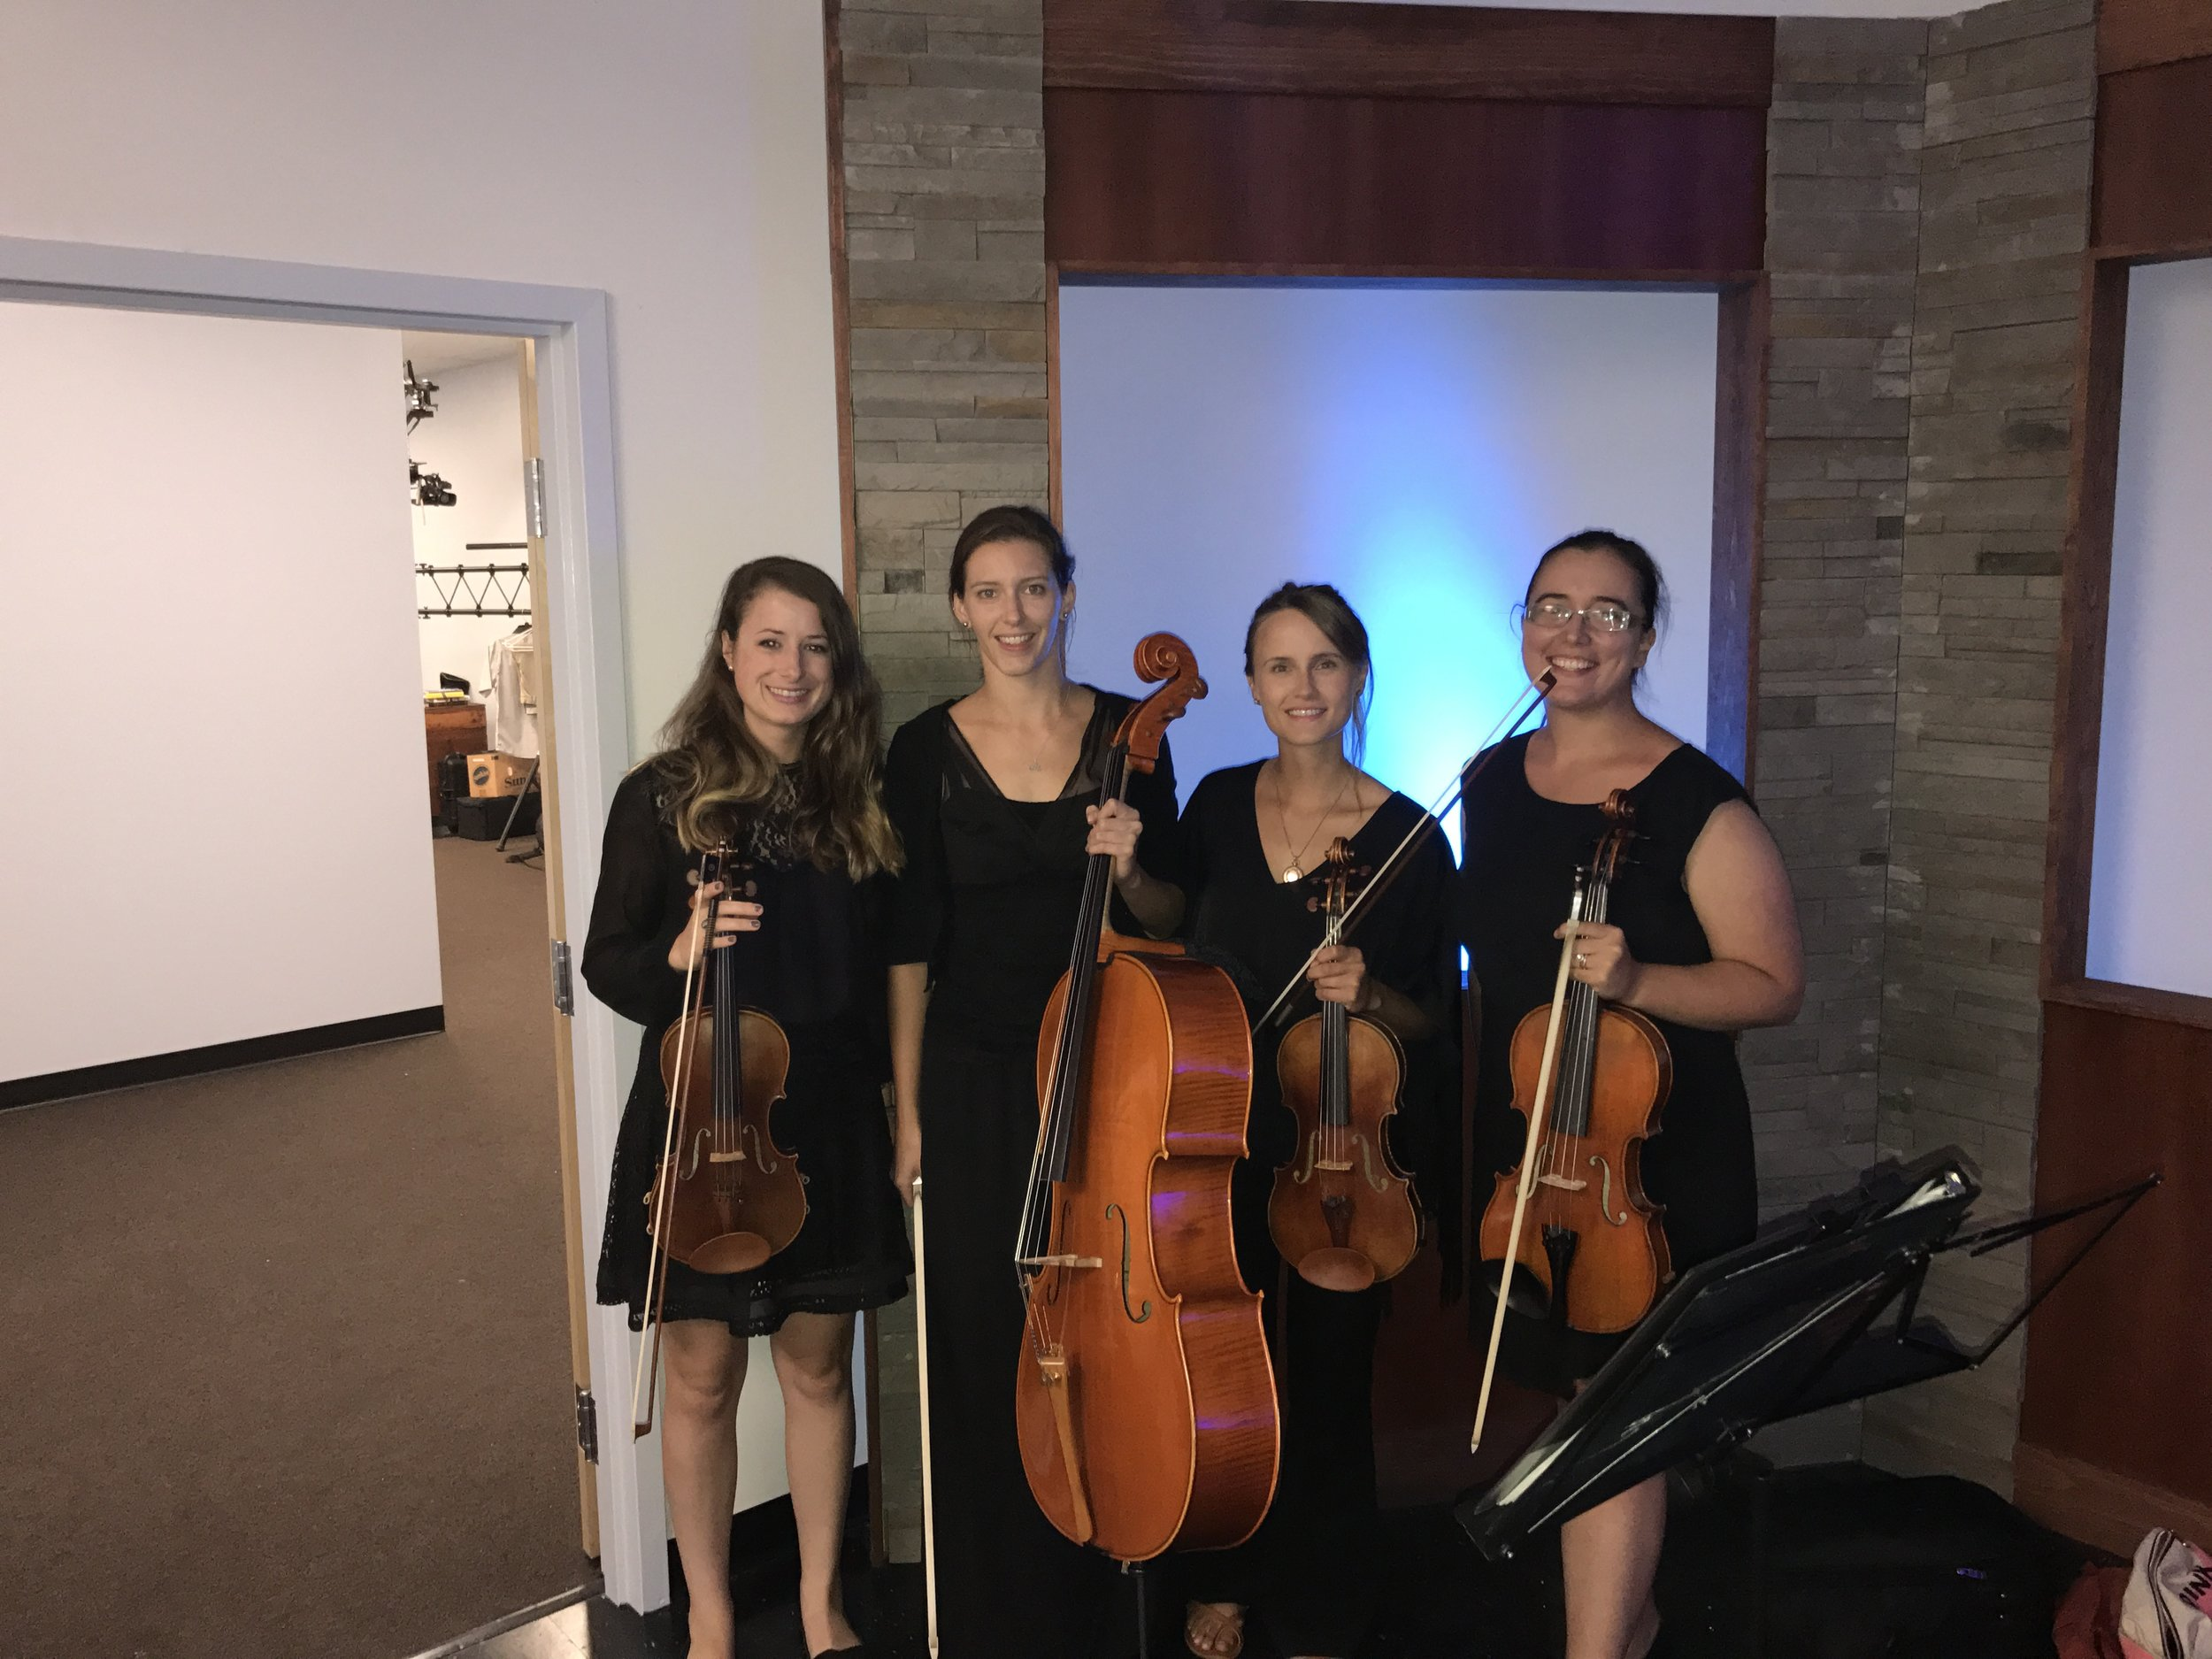 Before our performance on the Milford Youth Center Telethon on Milford Public TV. L-R: Brittany Stockwell, Jamie Thiesing, Kathryn Haddad, Sylvia DiCrescentis.